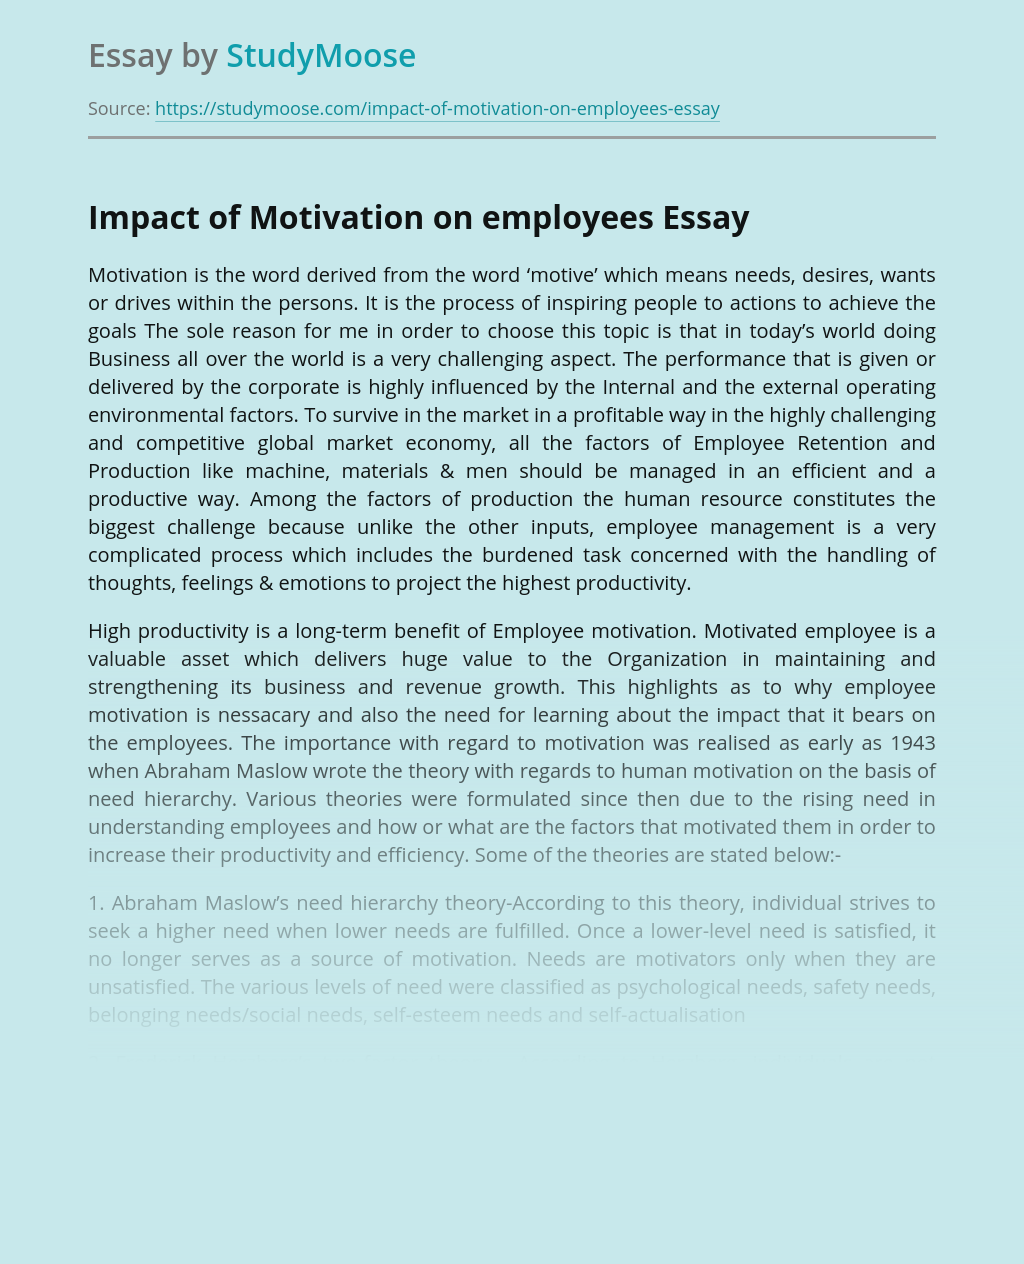 Impact of Motivation on employees